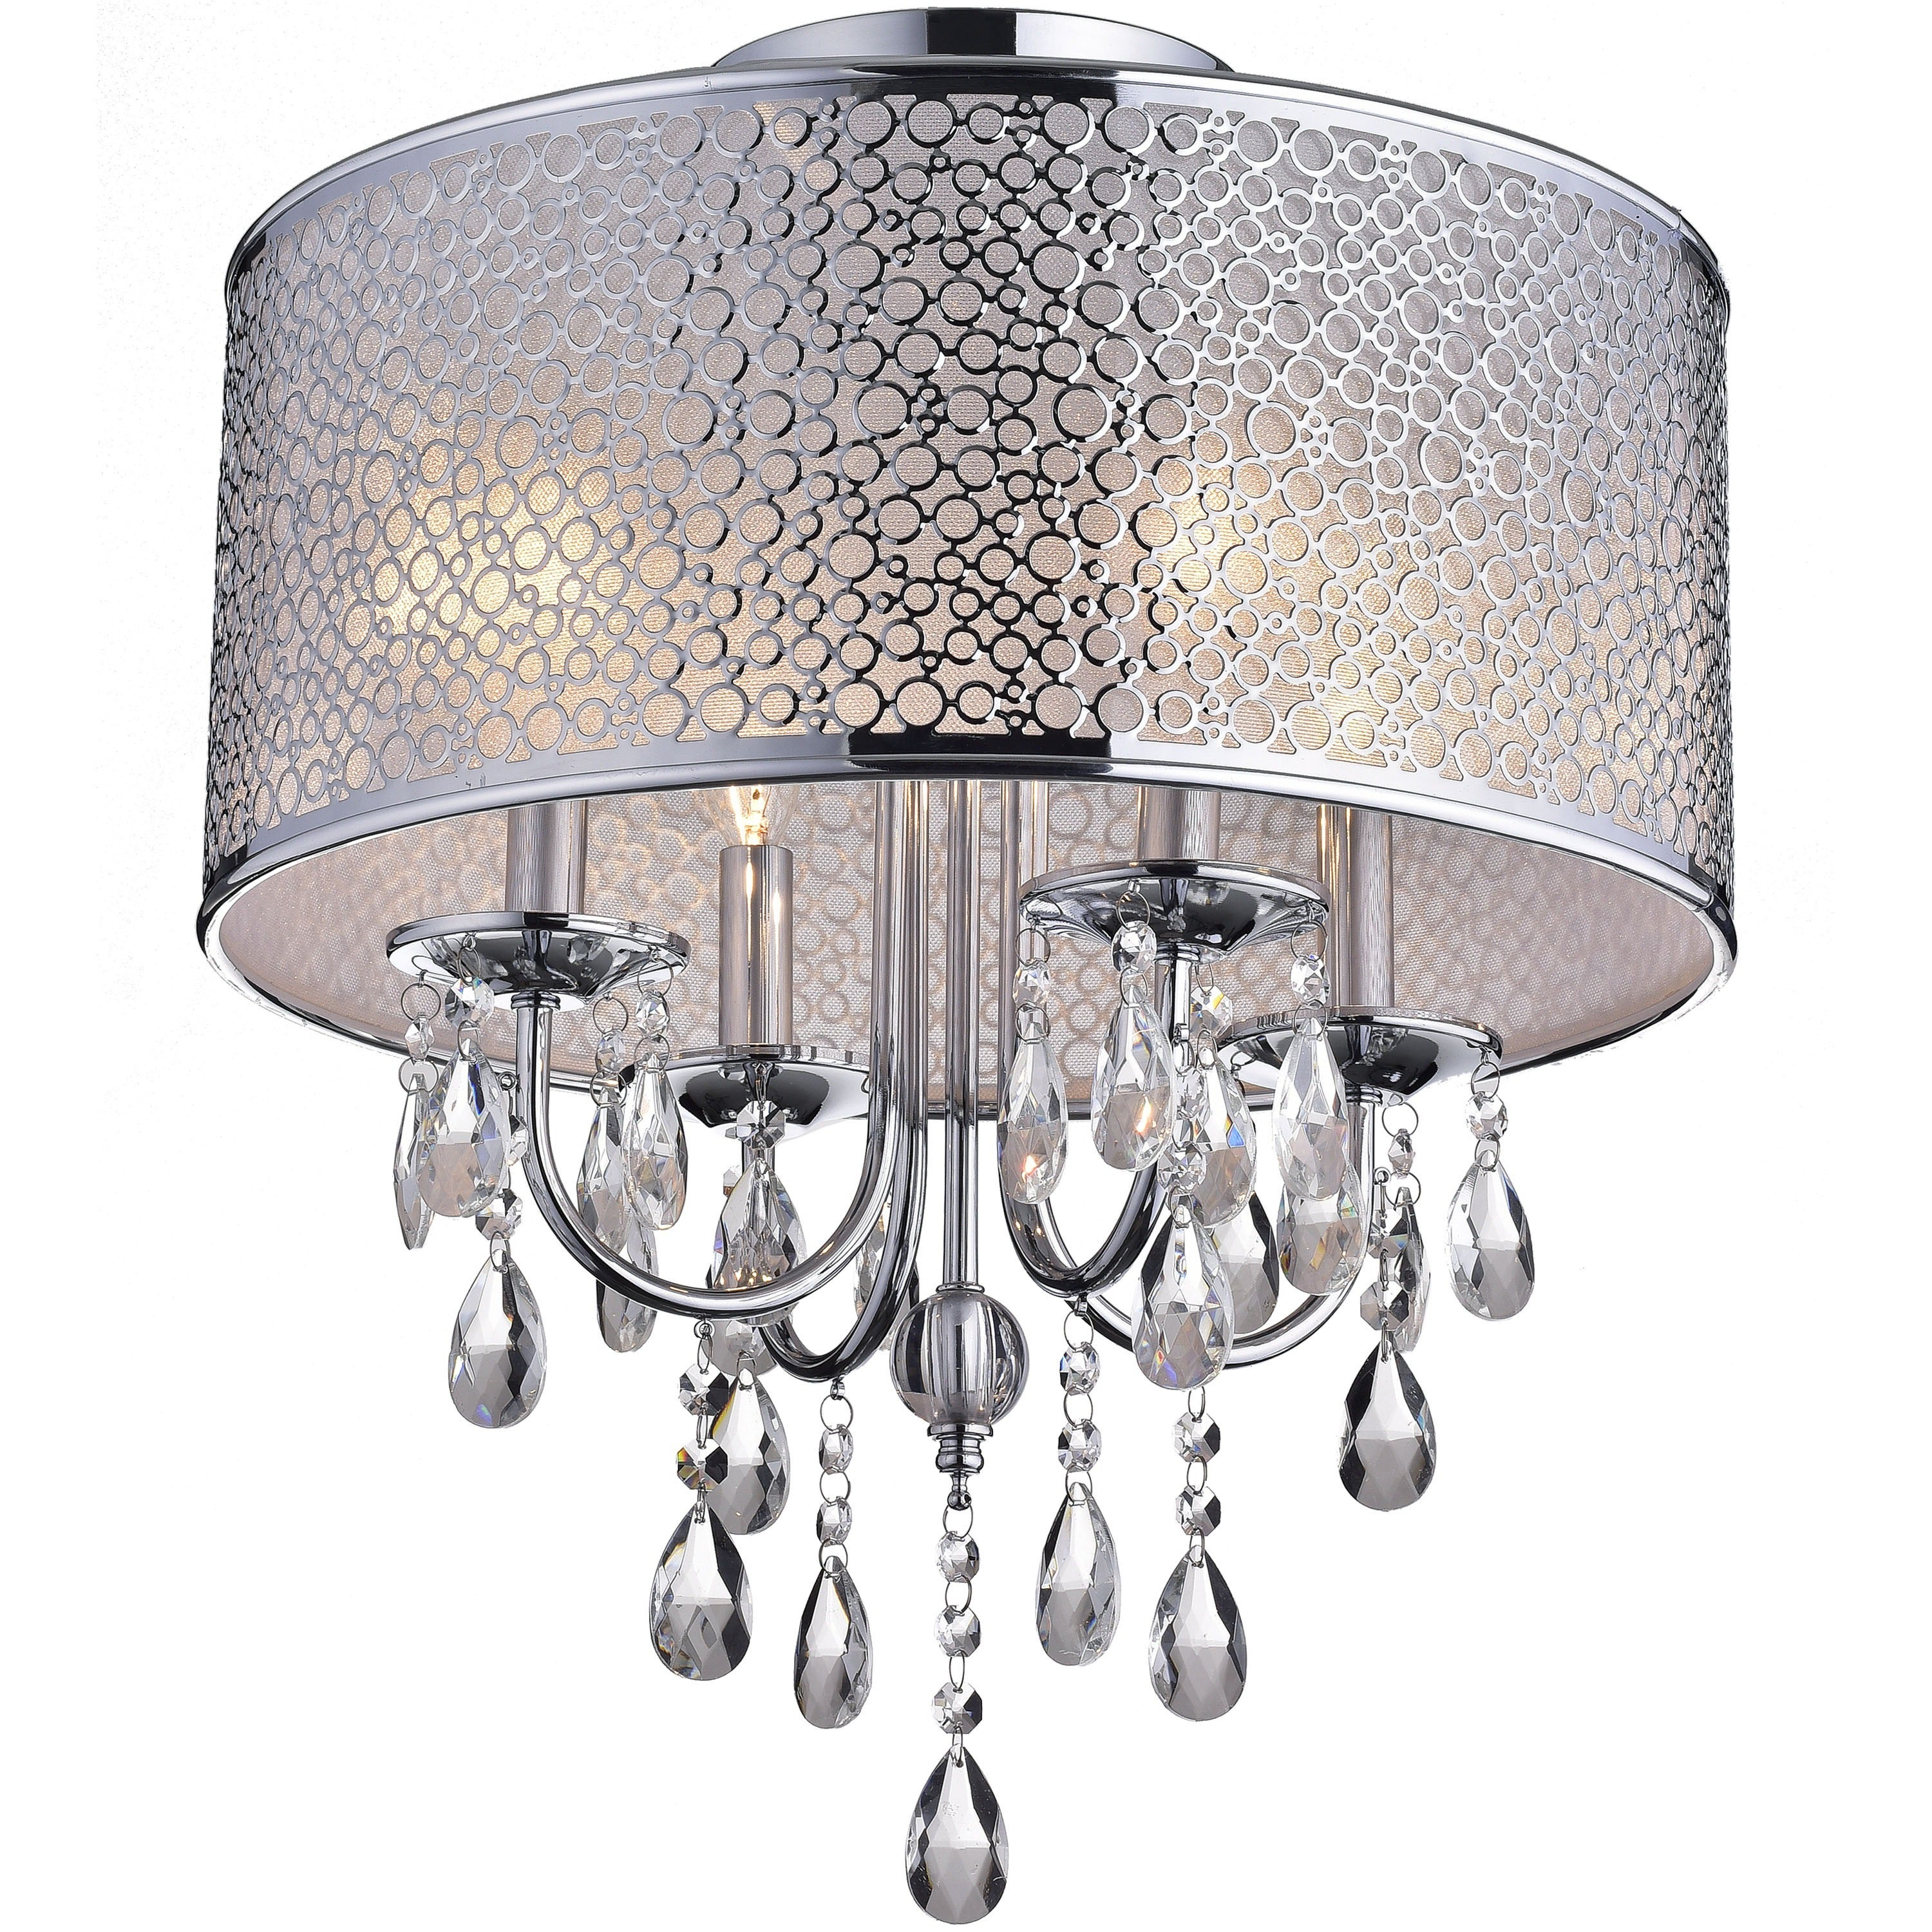 Amalia Indoor 4 Light Chrome Metal Drum Shade Crystal Flush Mount Chandelier Free Today Com 9833457